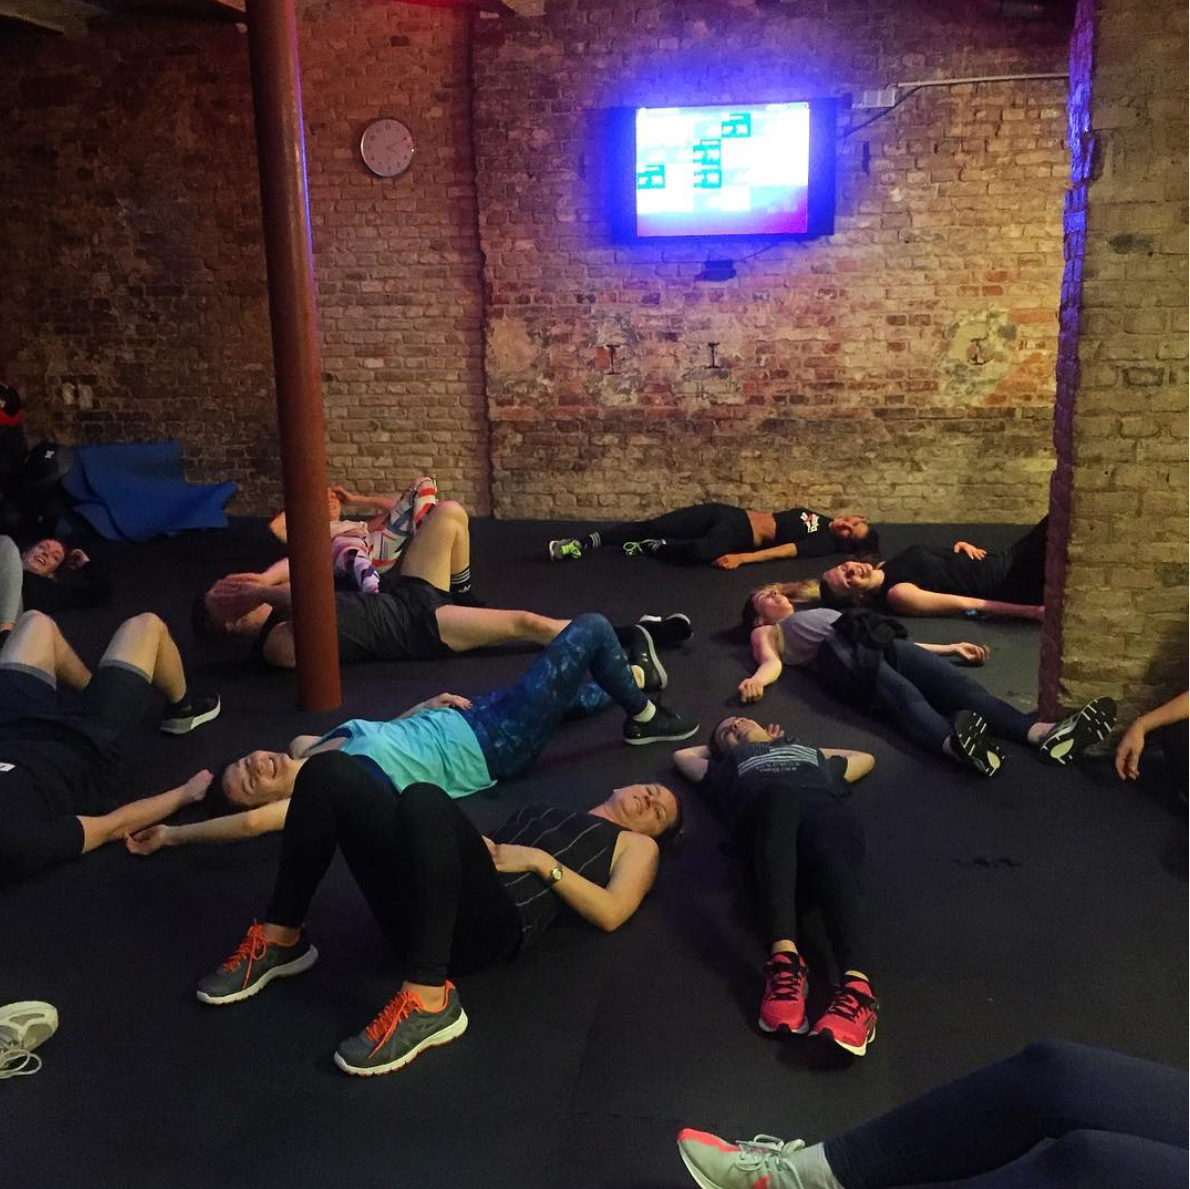 Girls and guys lying on the floor exhausted after a workout at Beat 81 Mitte location. Heart rates are visible on the monitor hanging on the brick wall